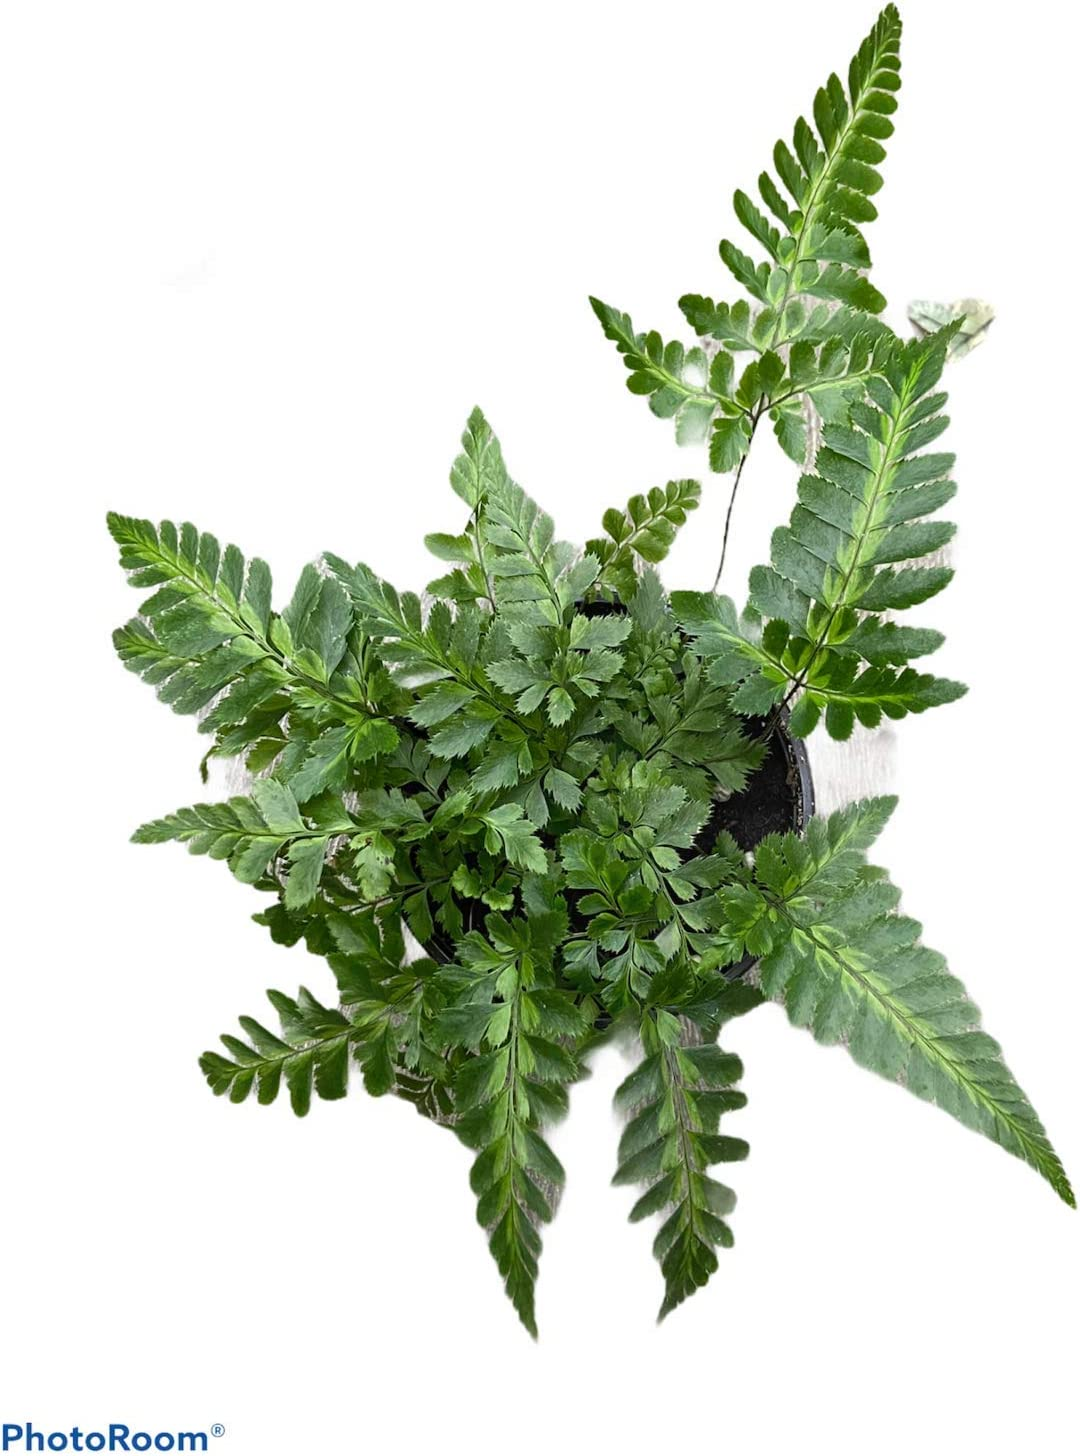 Fern - East List price Indian Max 47% OFF Pot Holly 4